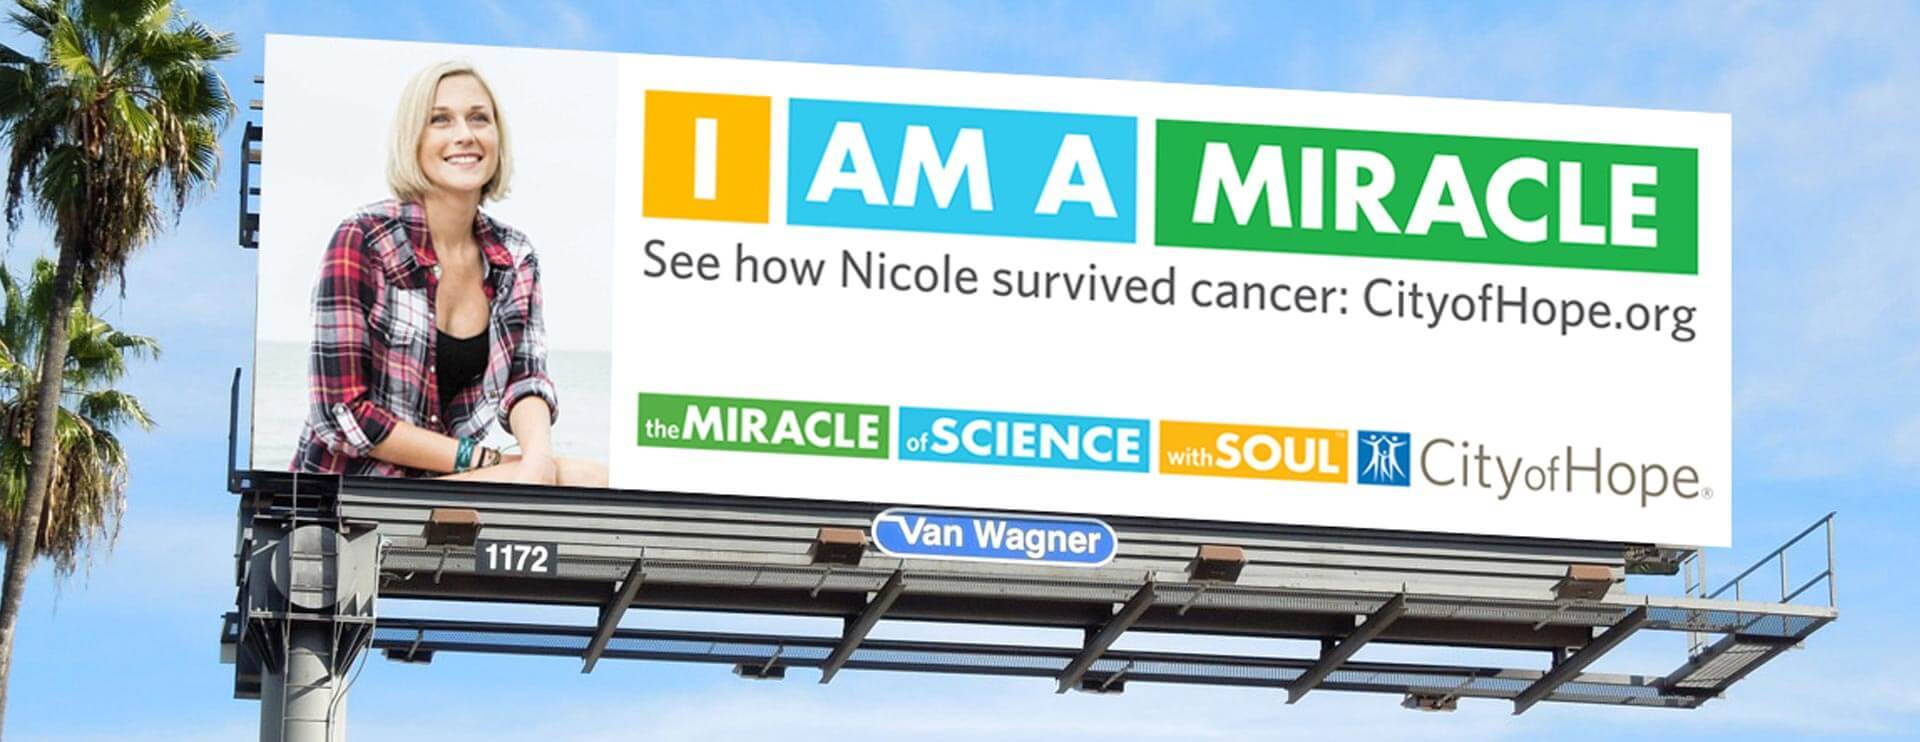 City of Hope. The miracle of science with soul. Billboard